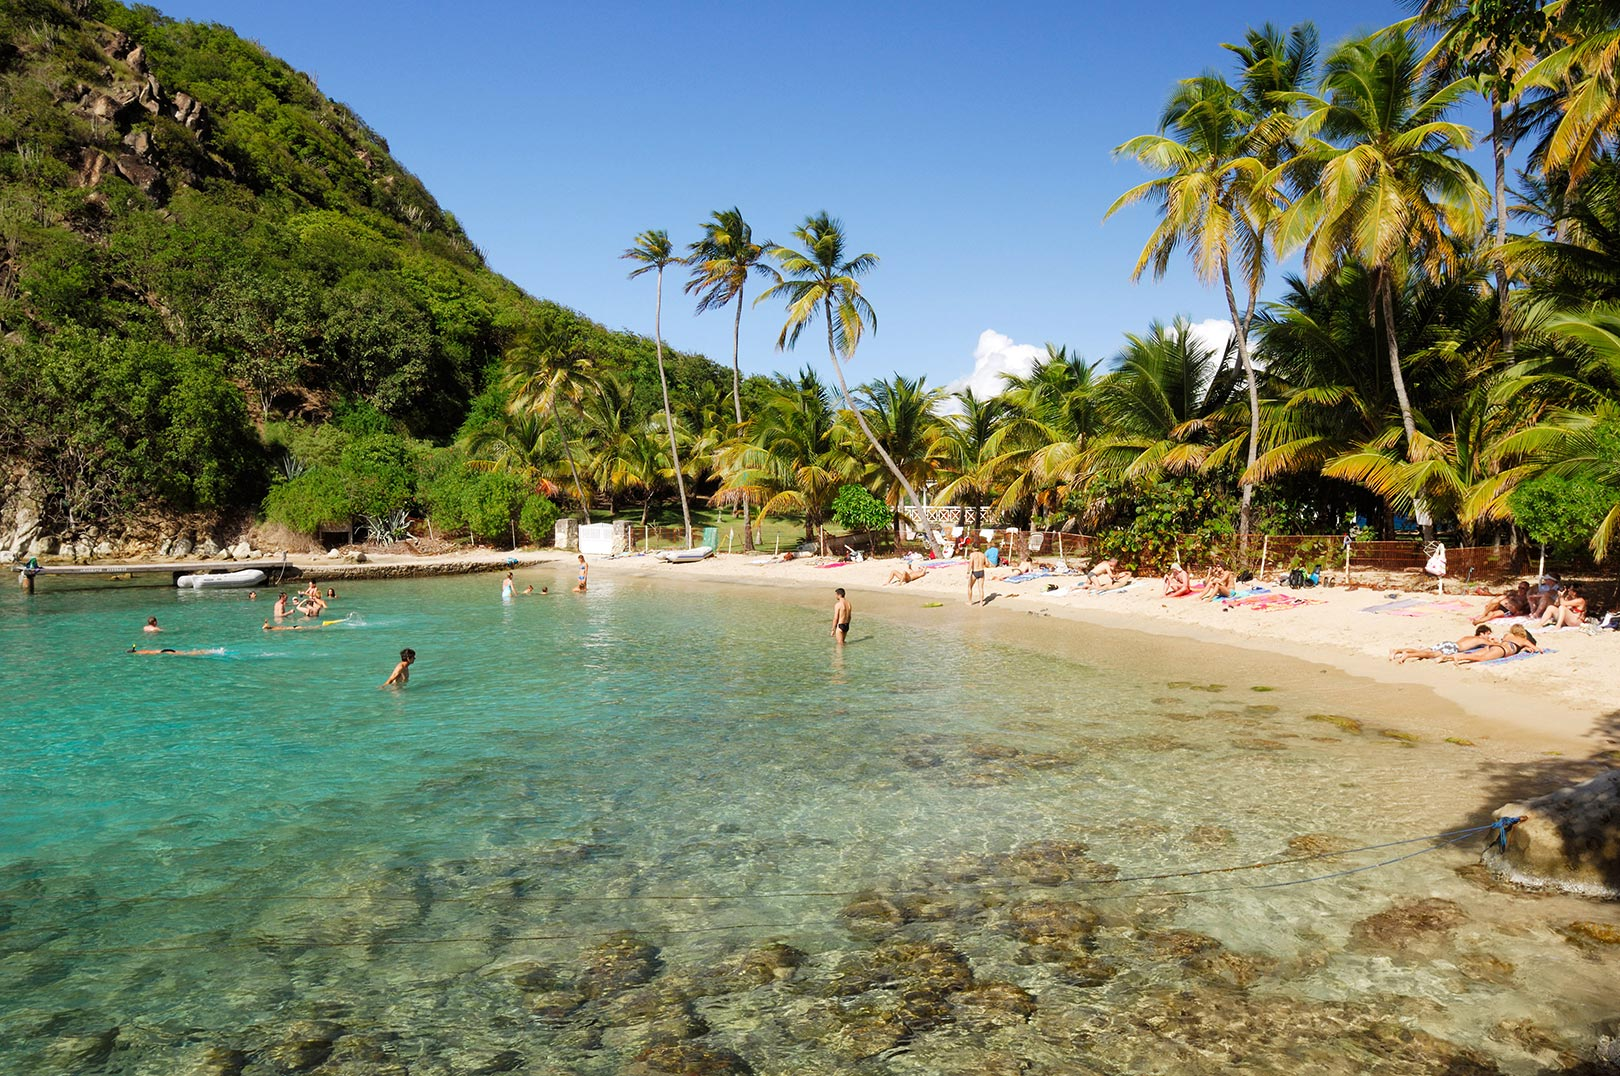 Picture of people relaxing at sugarloaf cove les saintes guadeloupe islands